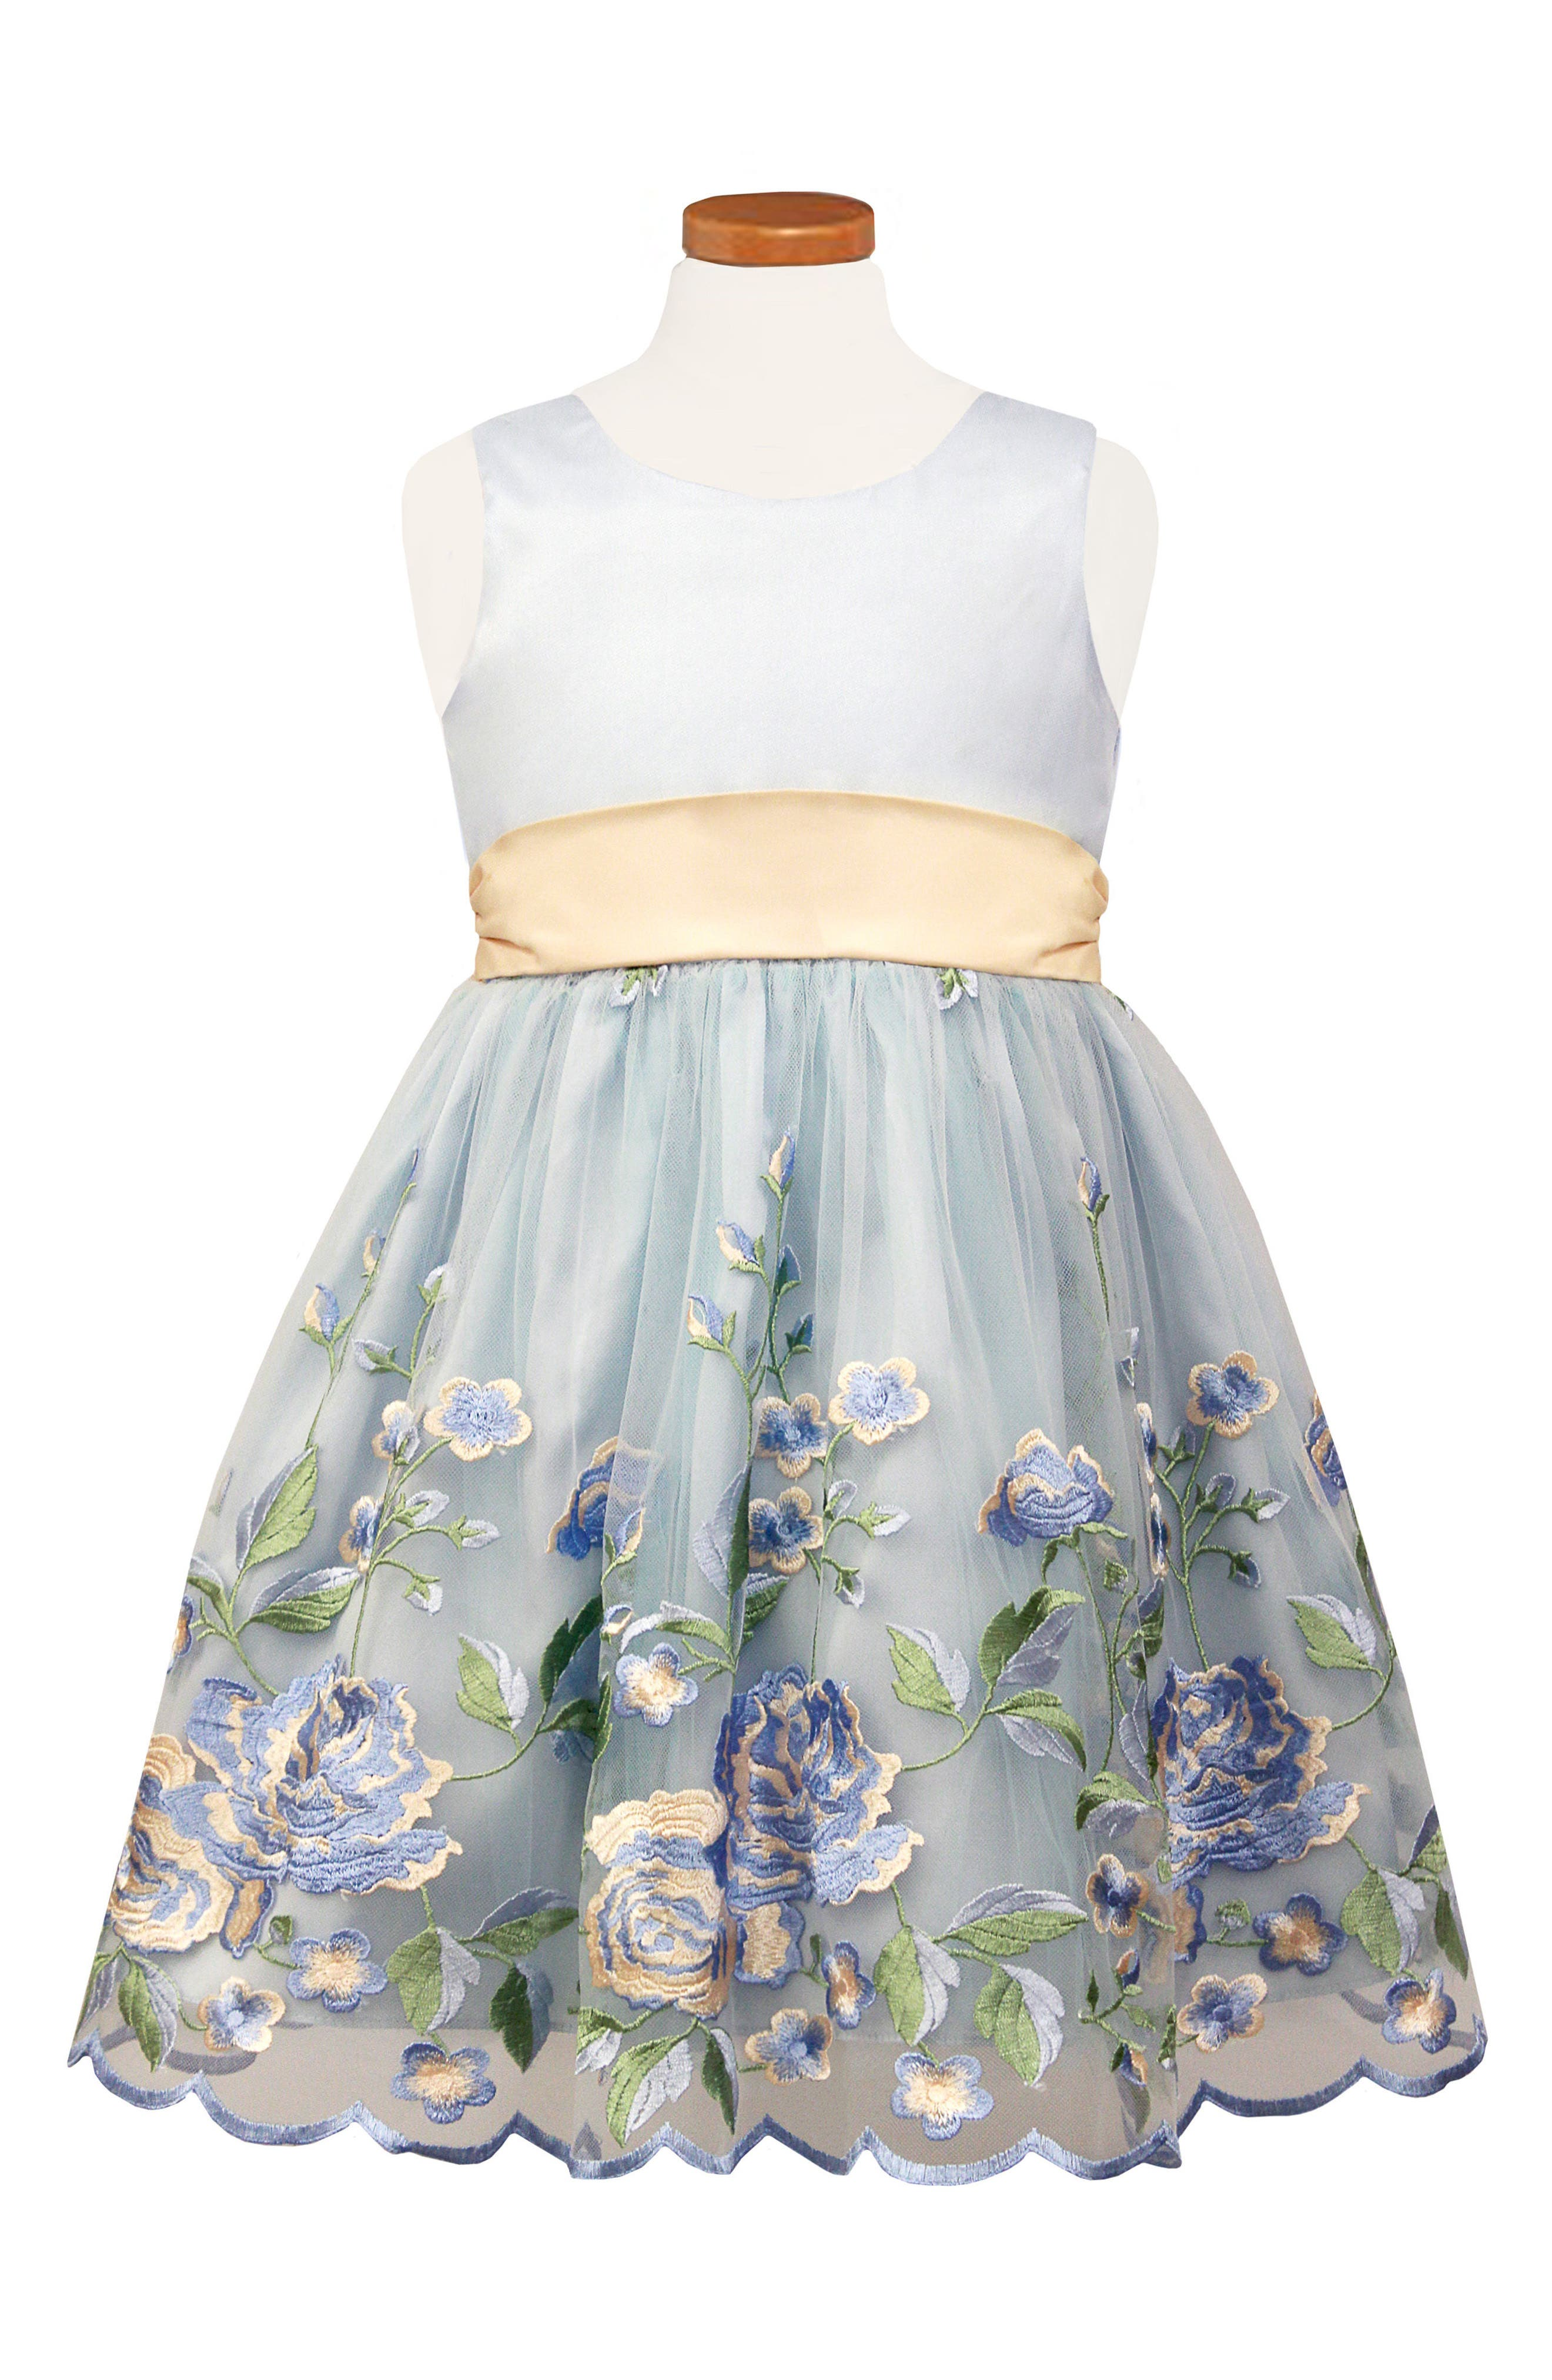 Floral Embroidered Tulle & Organza Party Dress,                             Main thumbnail 1, color,                             Blue